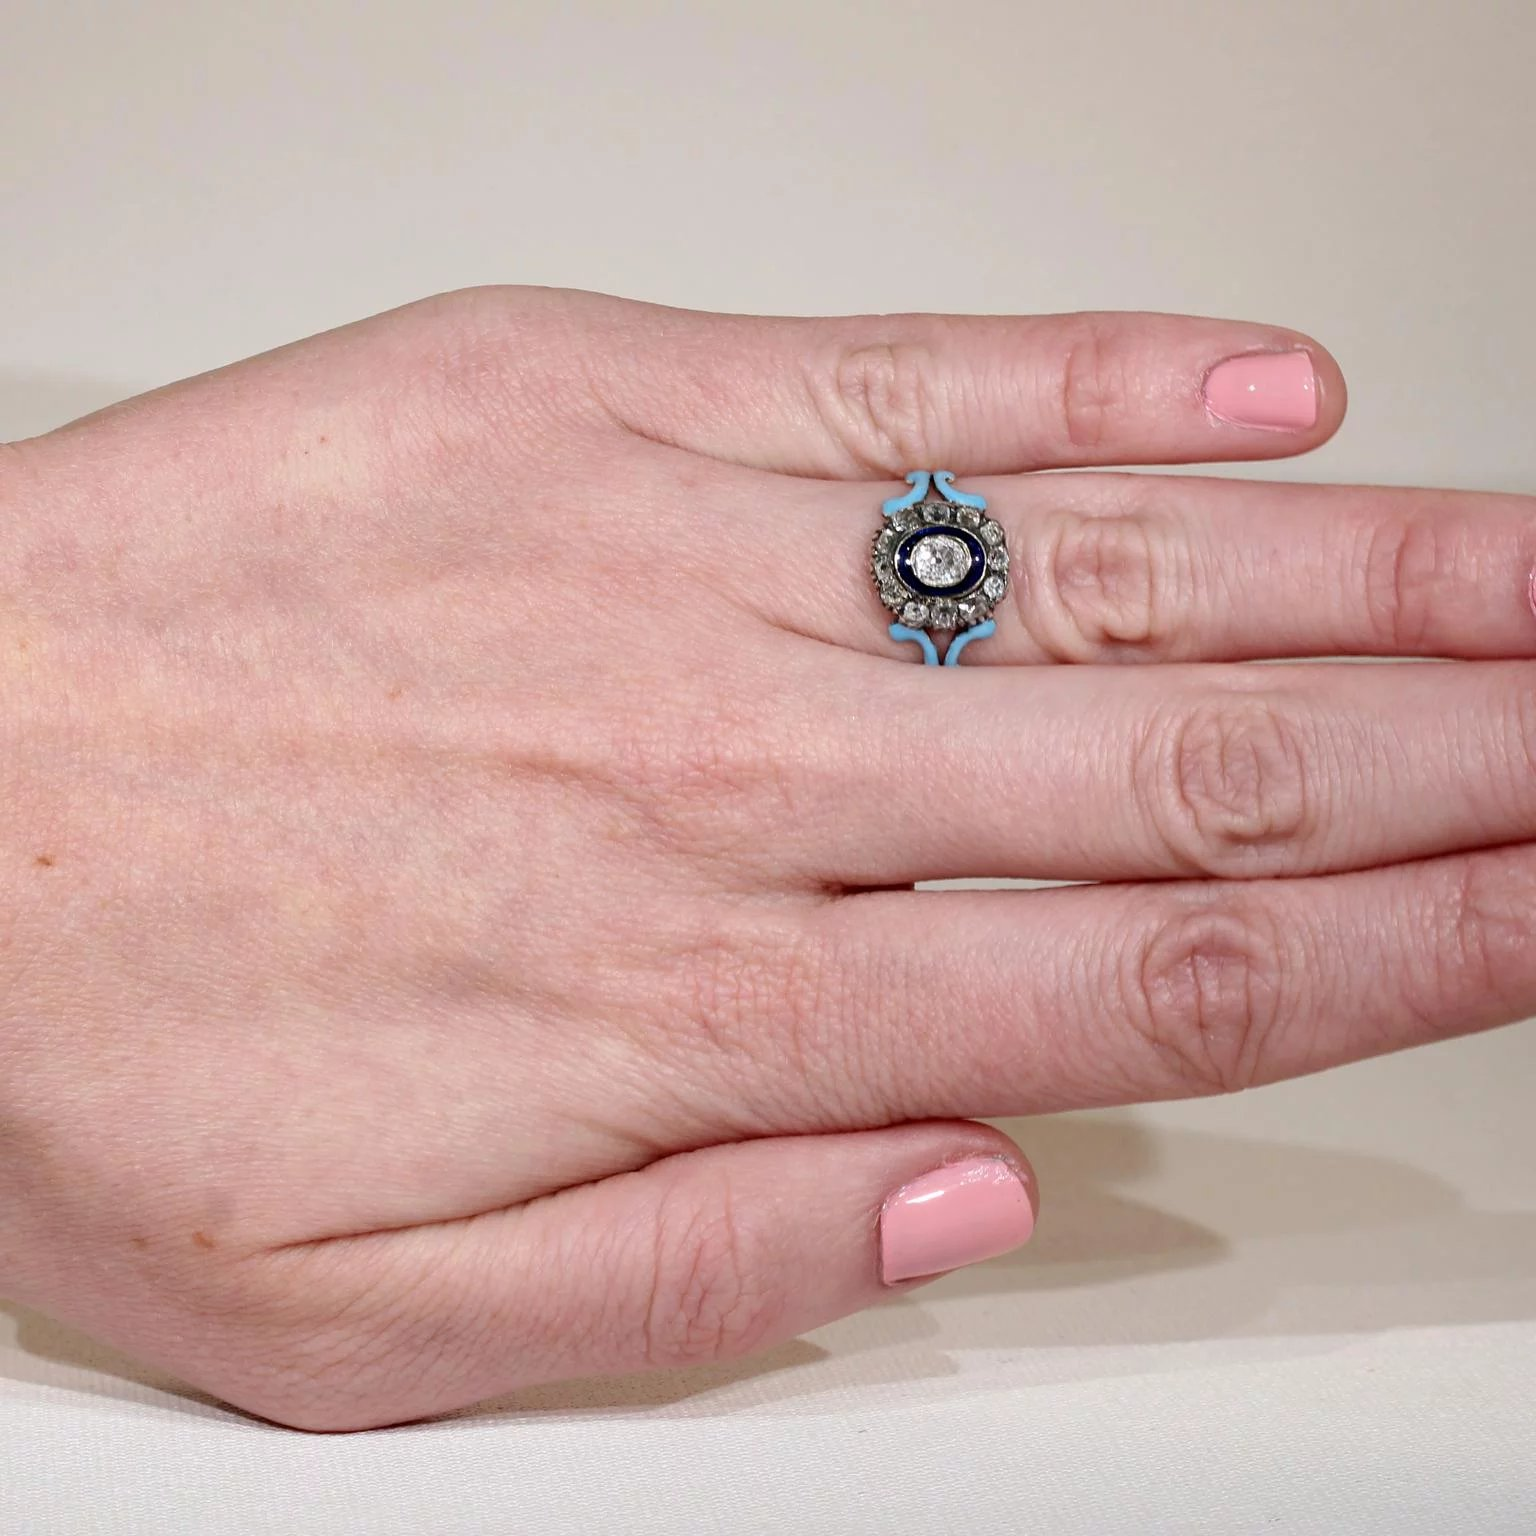 Antique Diamond Cluster Ring with Dark and Light Blue Enamel 1.4cttw ...